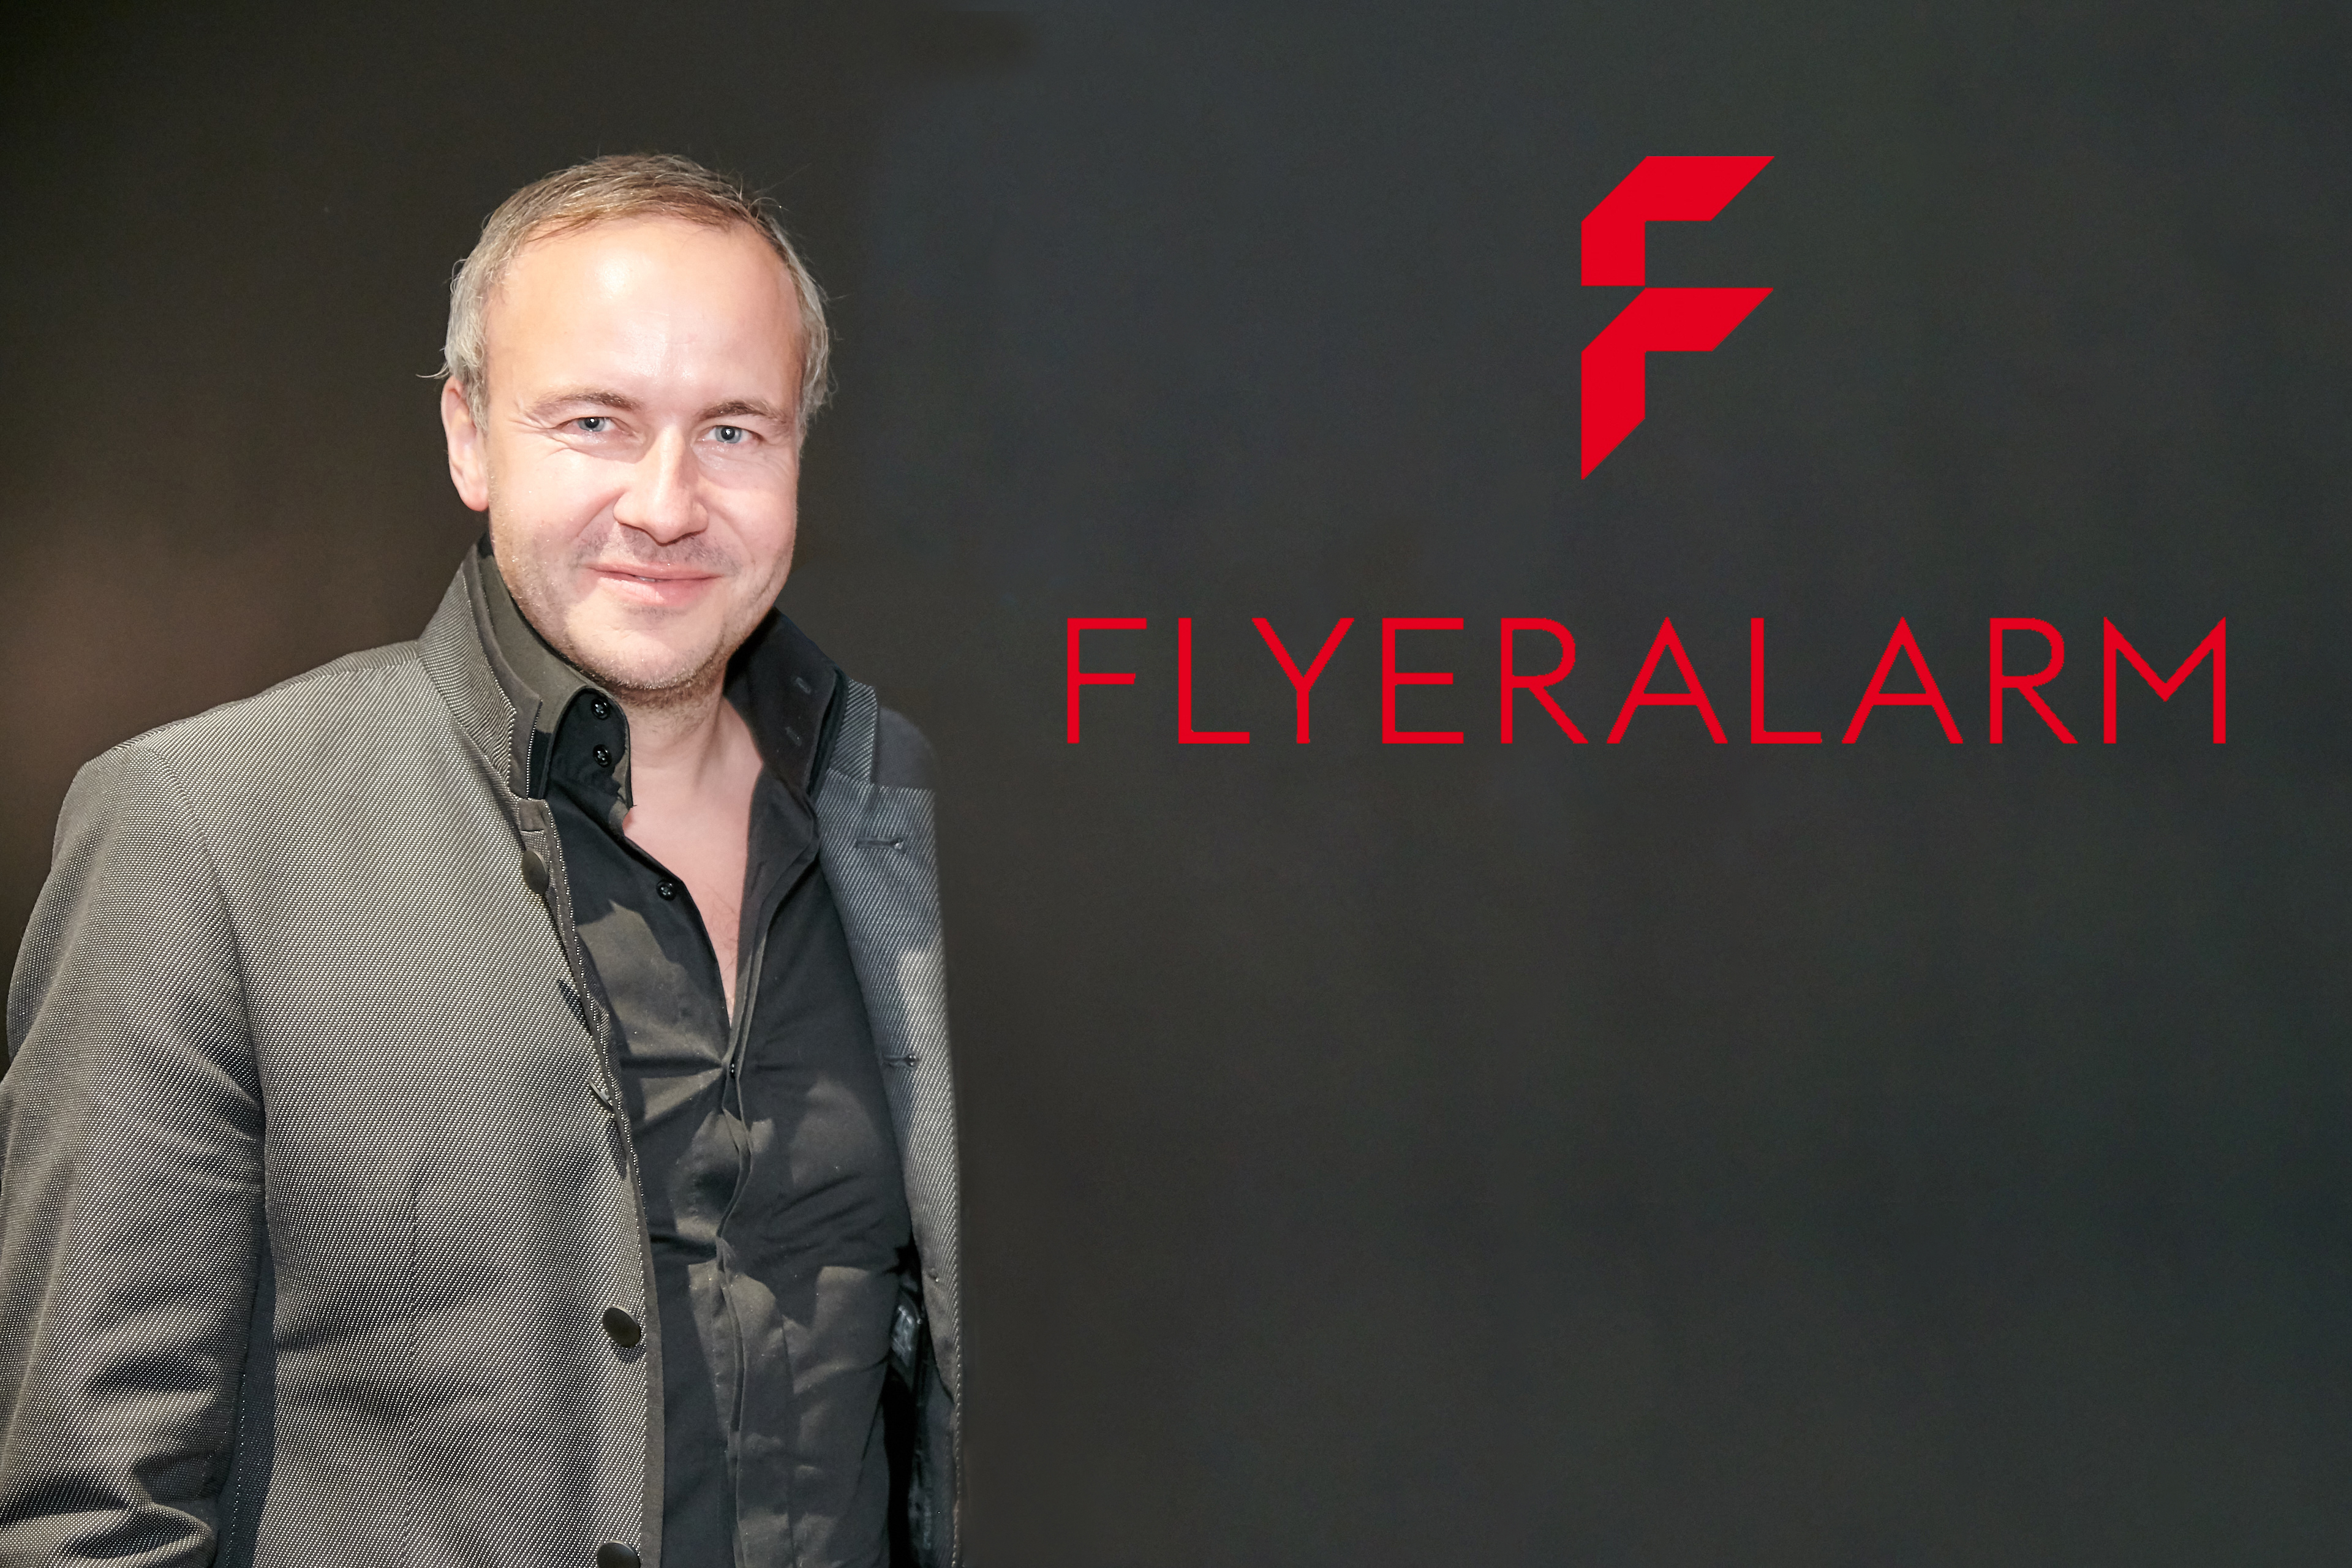 Flyeralarm: Start-up Spirit - Interview with company founder, Thorsten Fischer